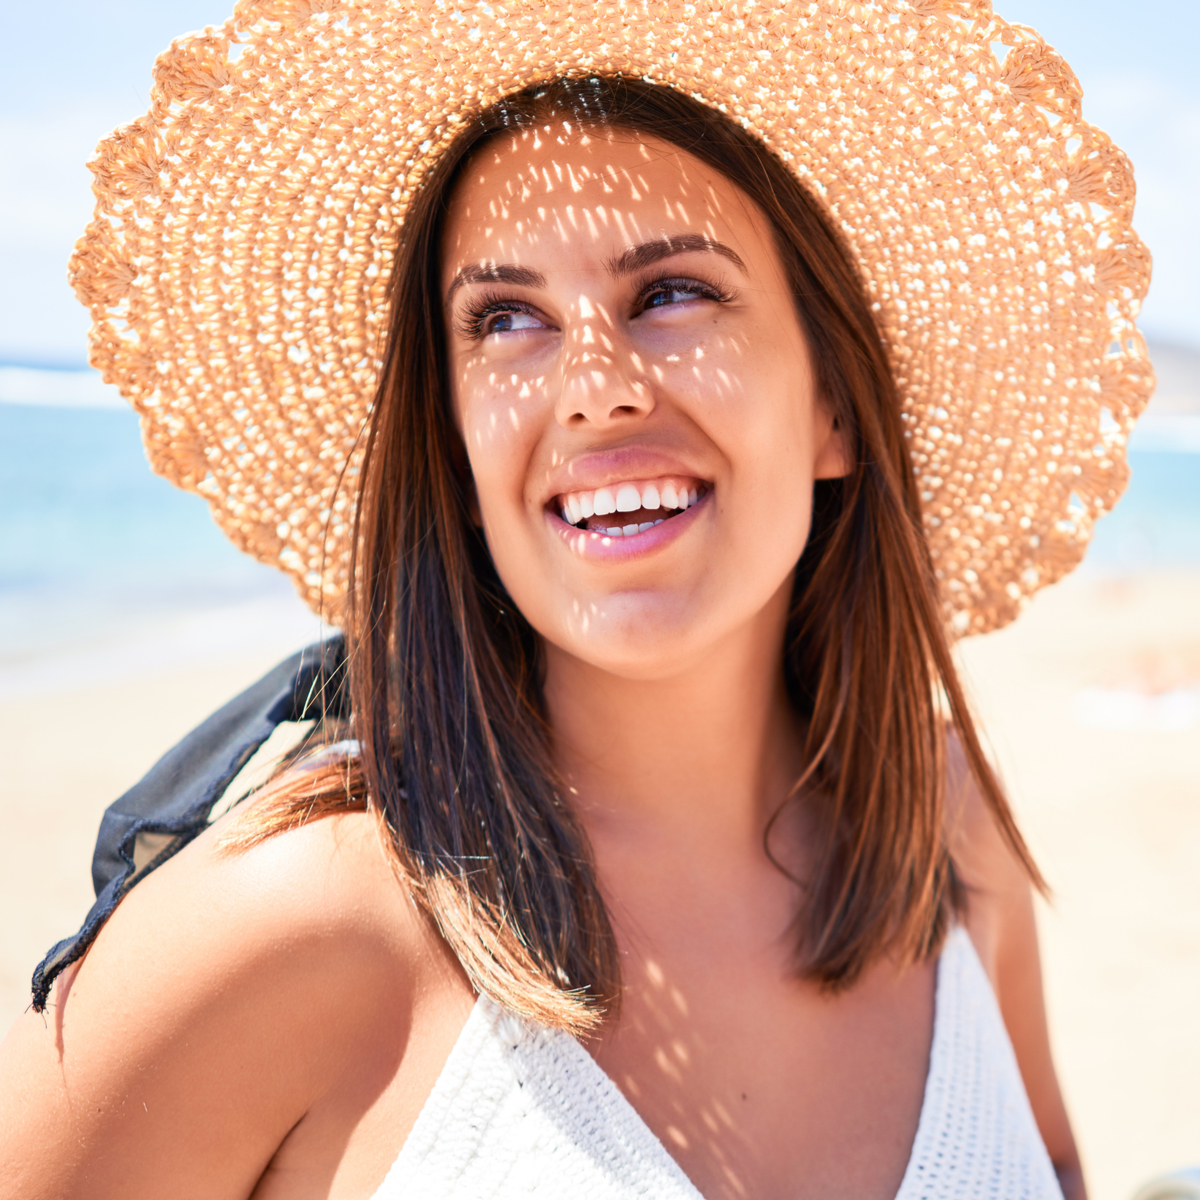 Is Sunlight a Cure for Acne?